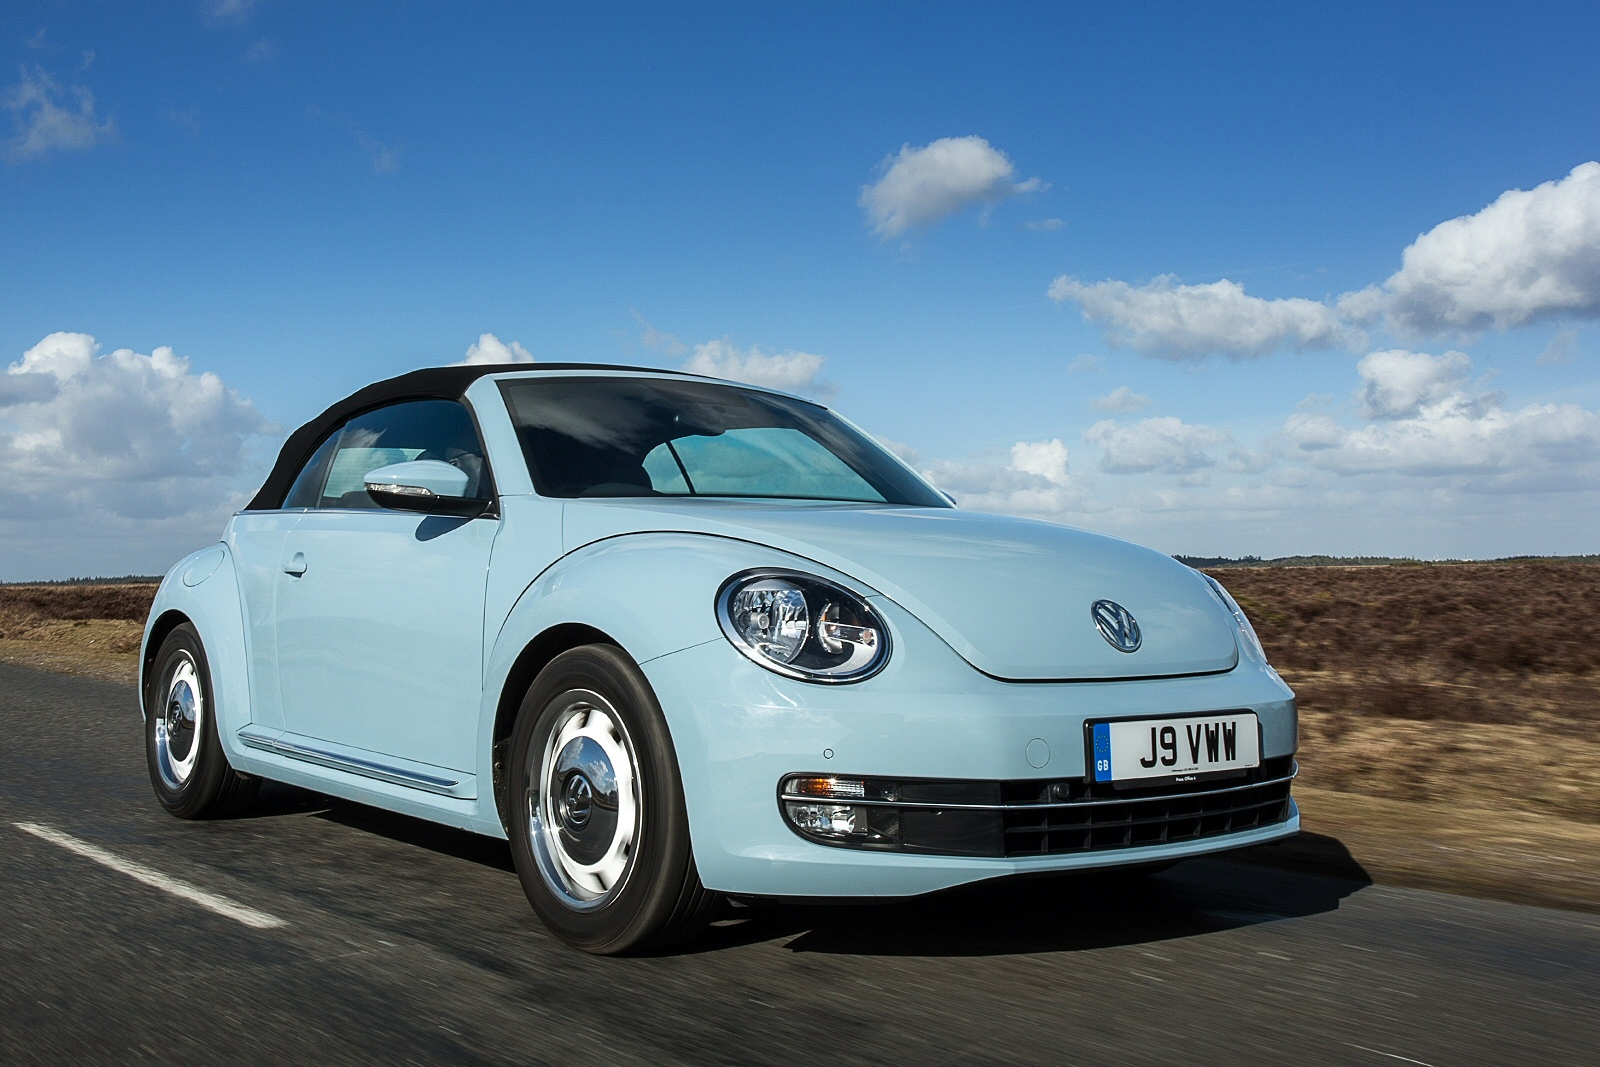 2019 Volkswagen New Beetle Cabriolet Car Photos Catalog 2019